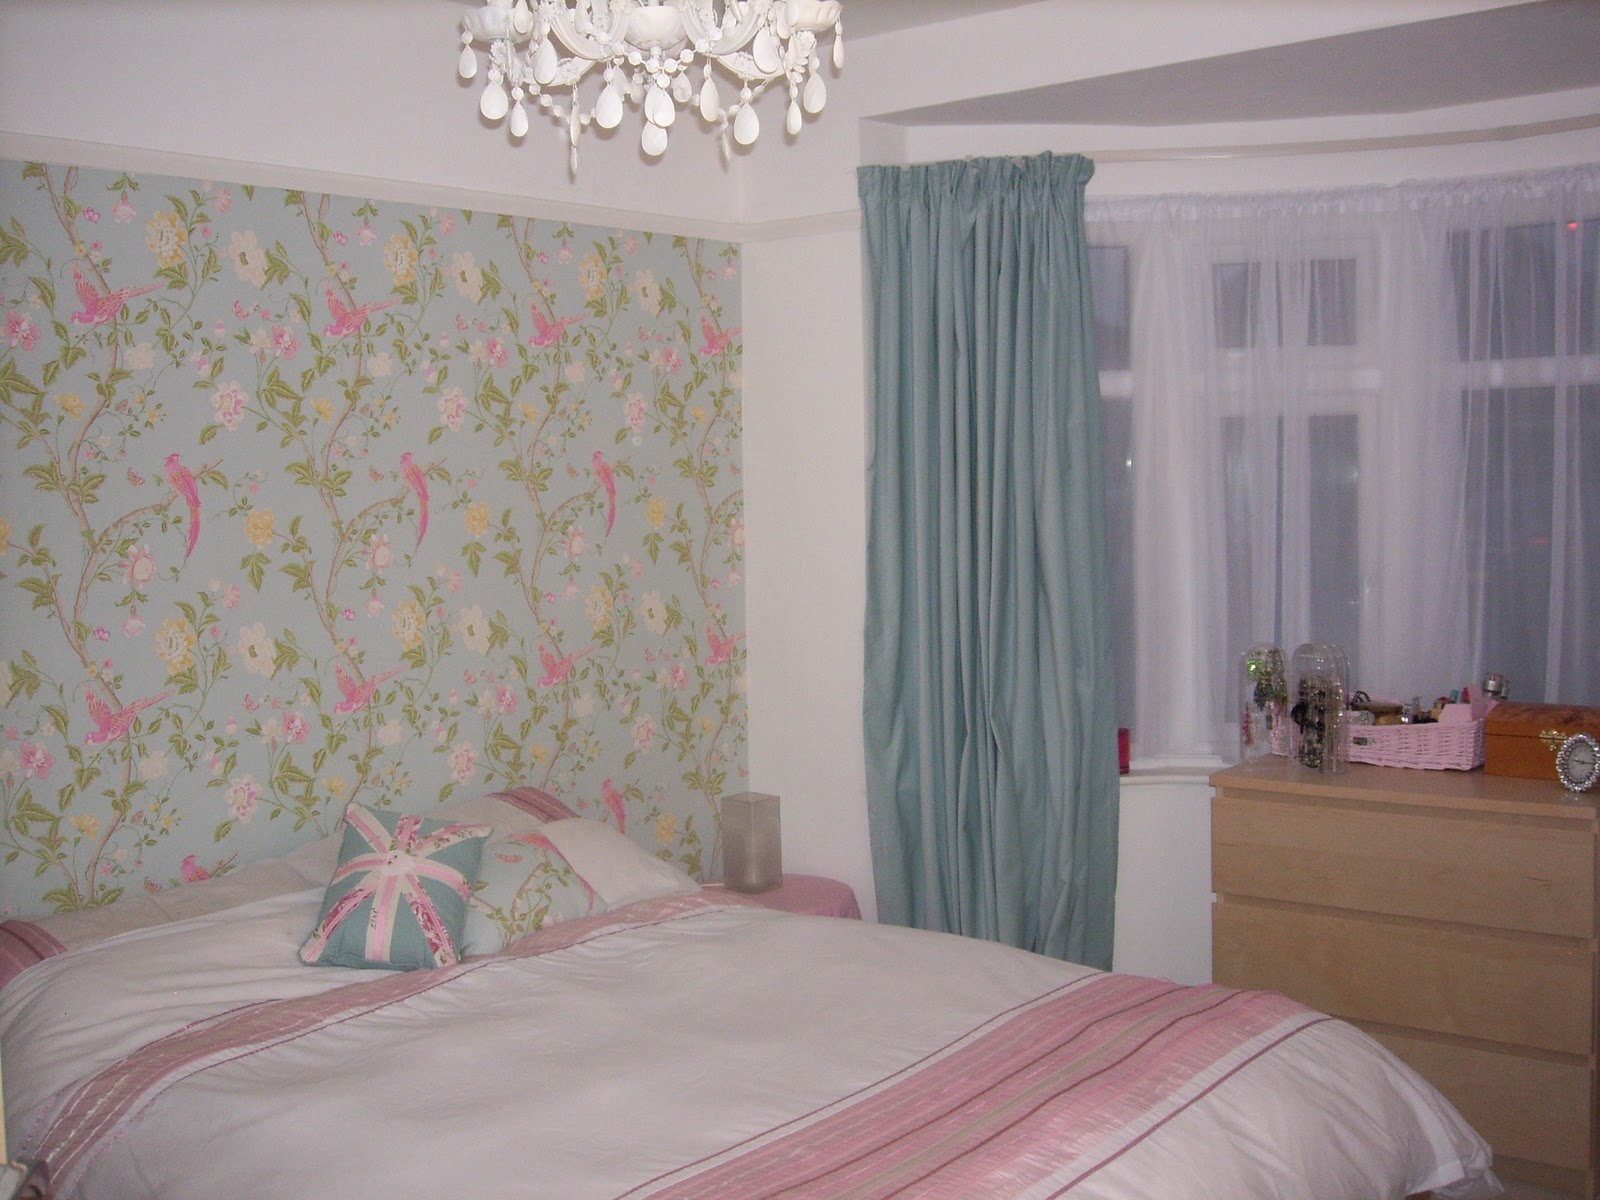 The wallpaper is Summer Palace by Laura Ashley and is really pretty: 223